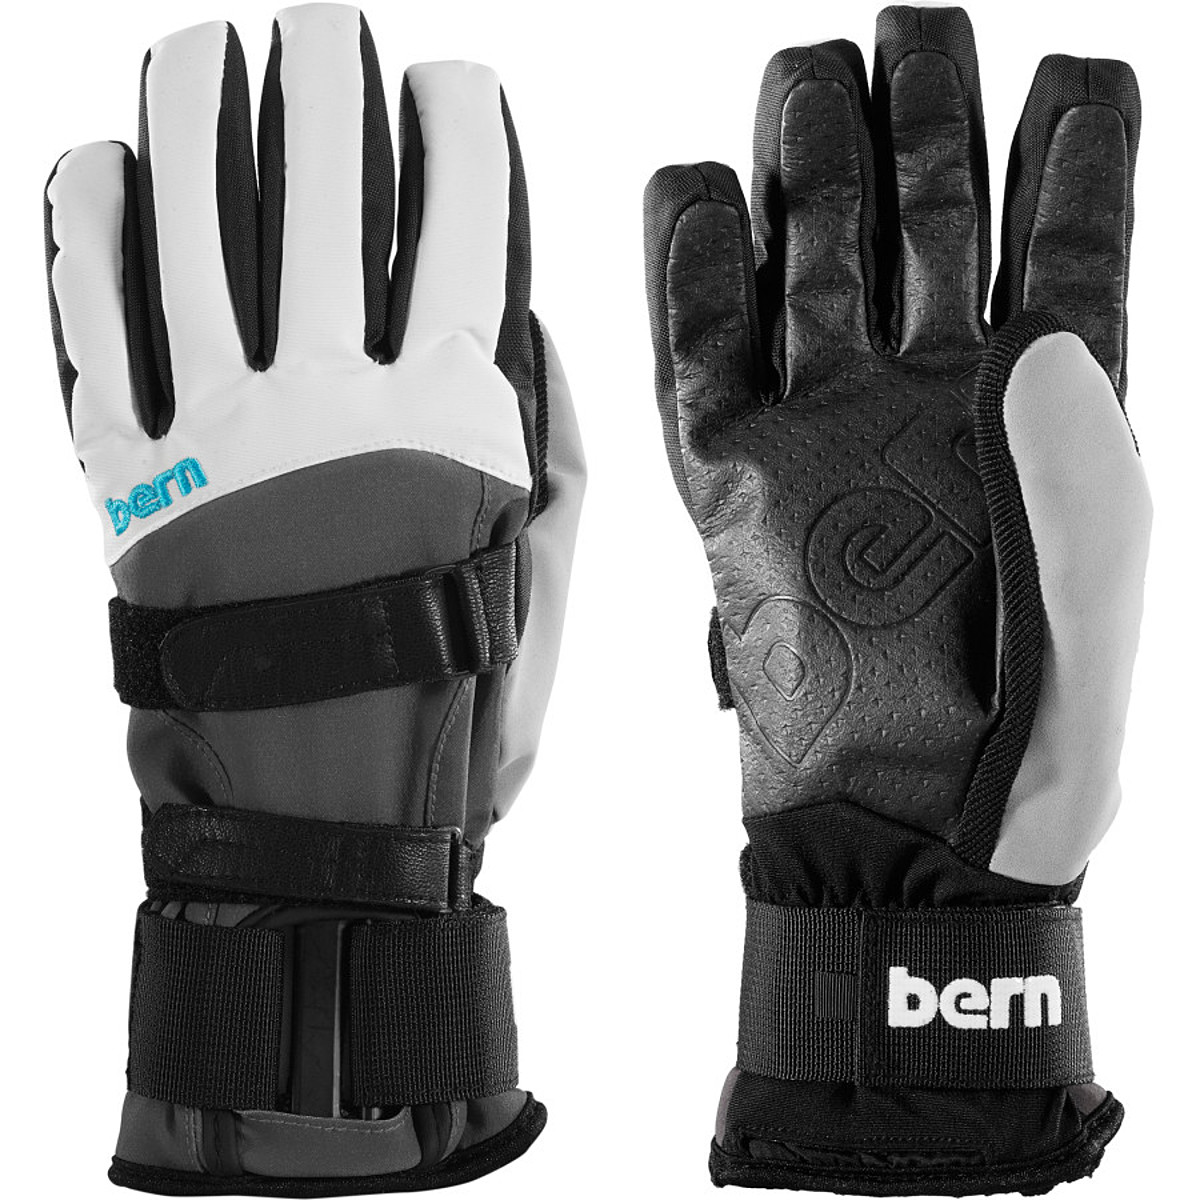 Bern Glove with Removable Wrist Guard